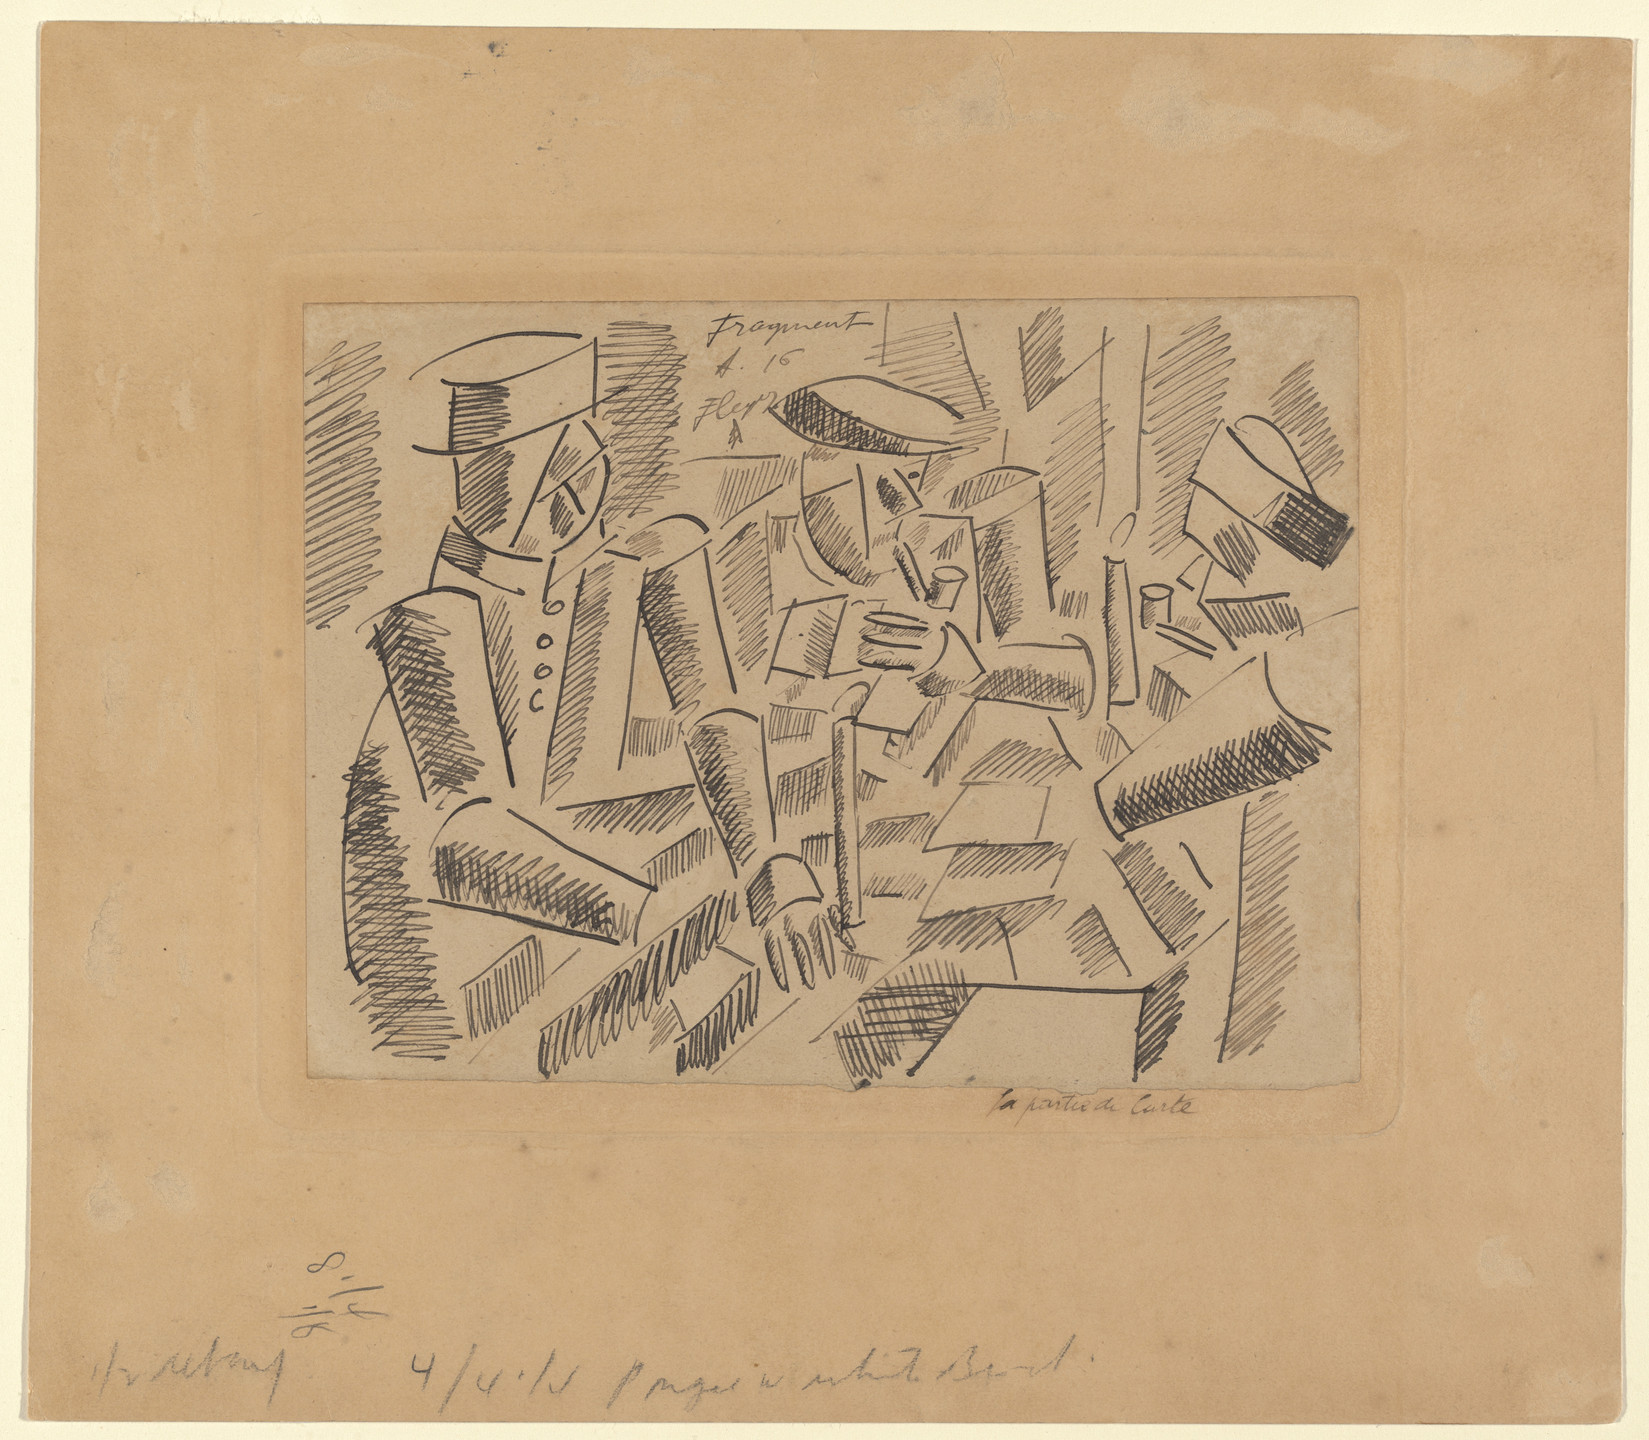 Fernand Léger. The Game of Cards. 1916